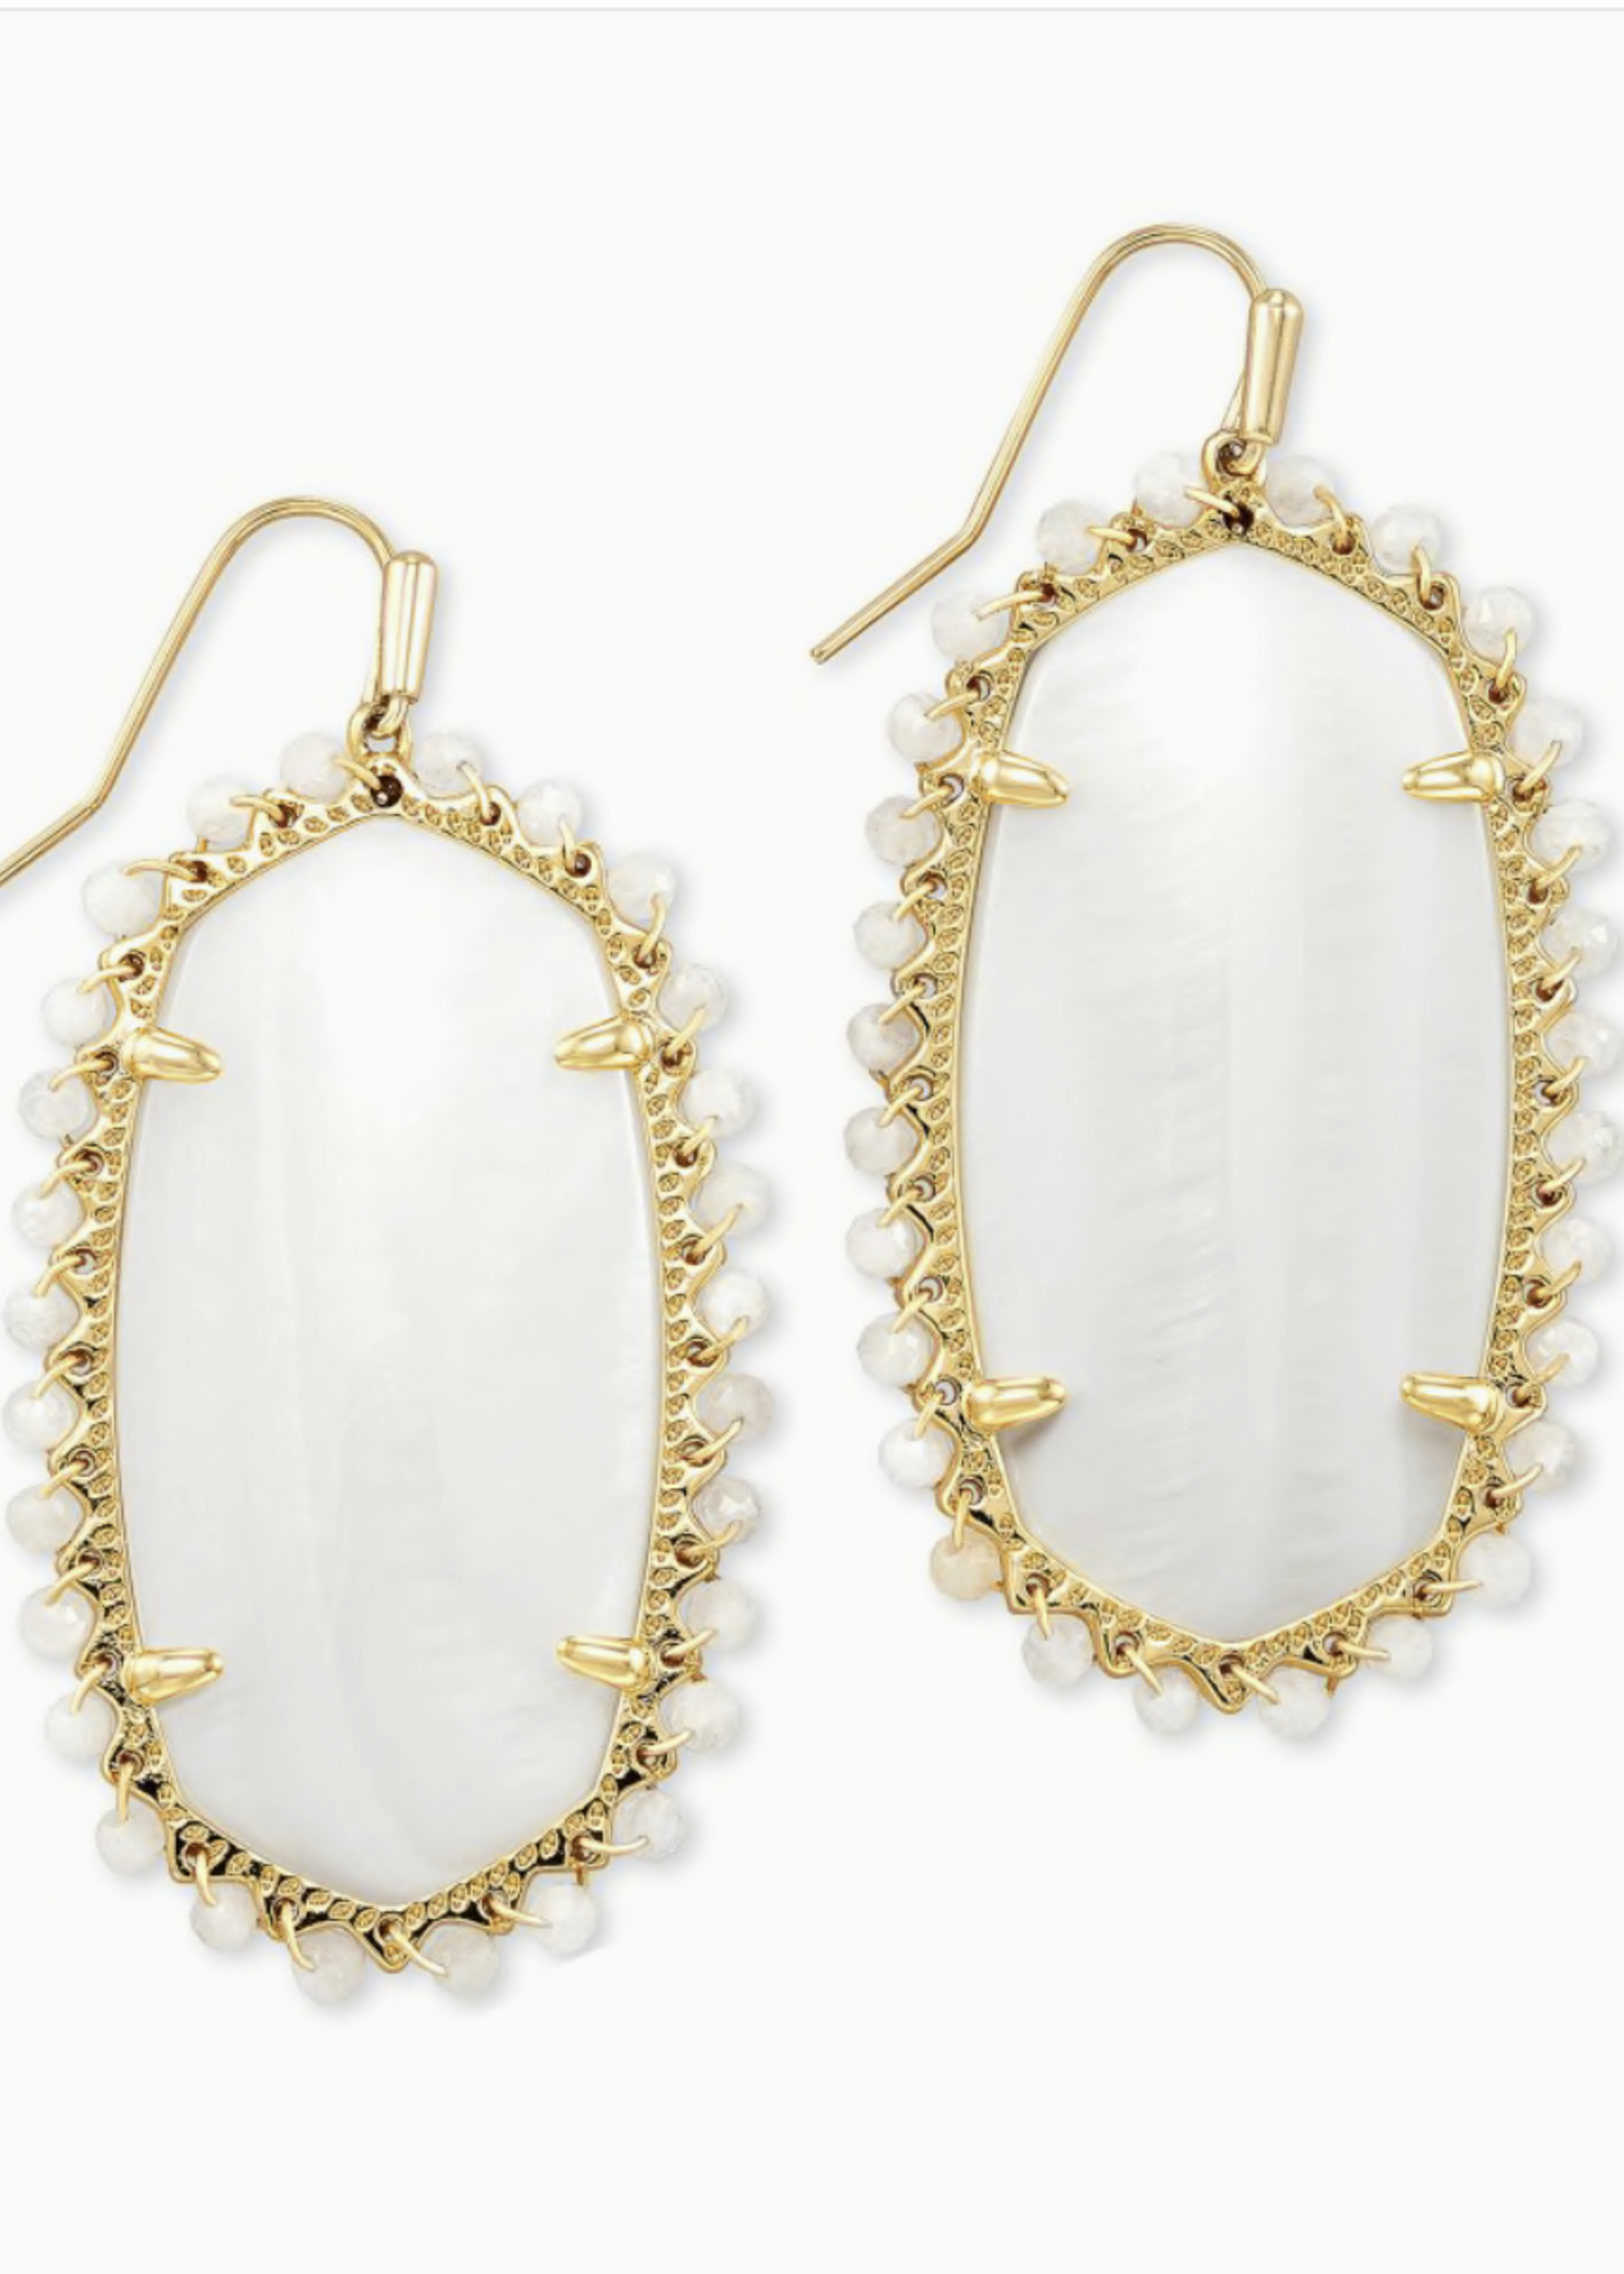 Kendra Scott Kendra Scott  Beaded Danielle Earring White